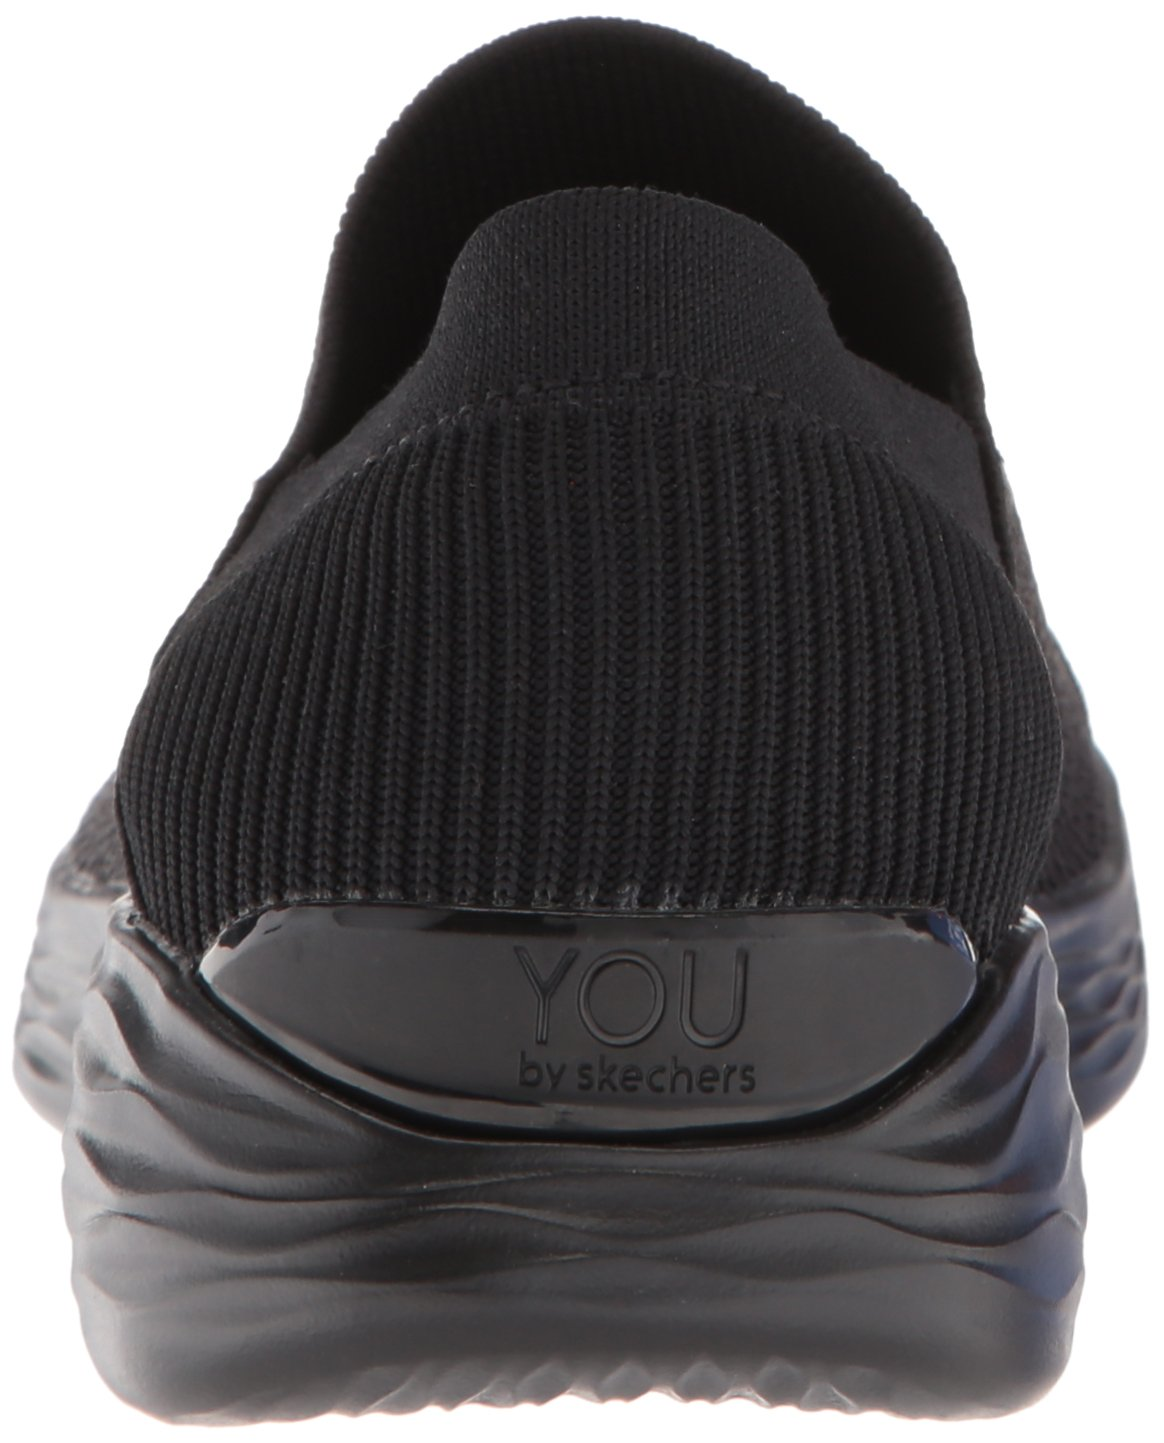 Skechers Women's You-14959 Sneaker B072KG63VH 5.5 B(M) US|Black